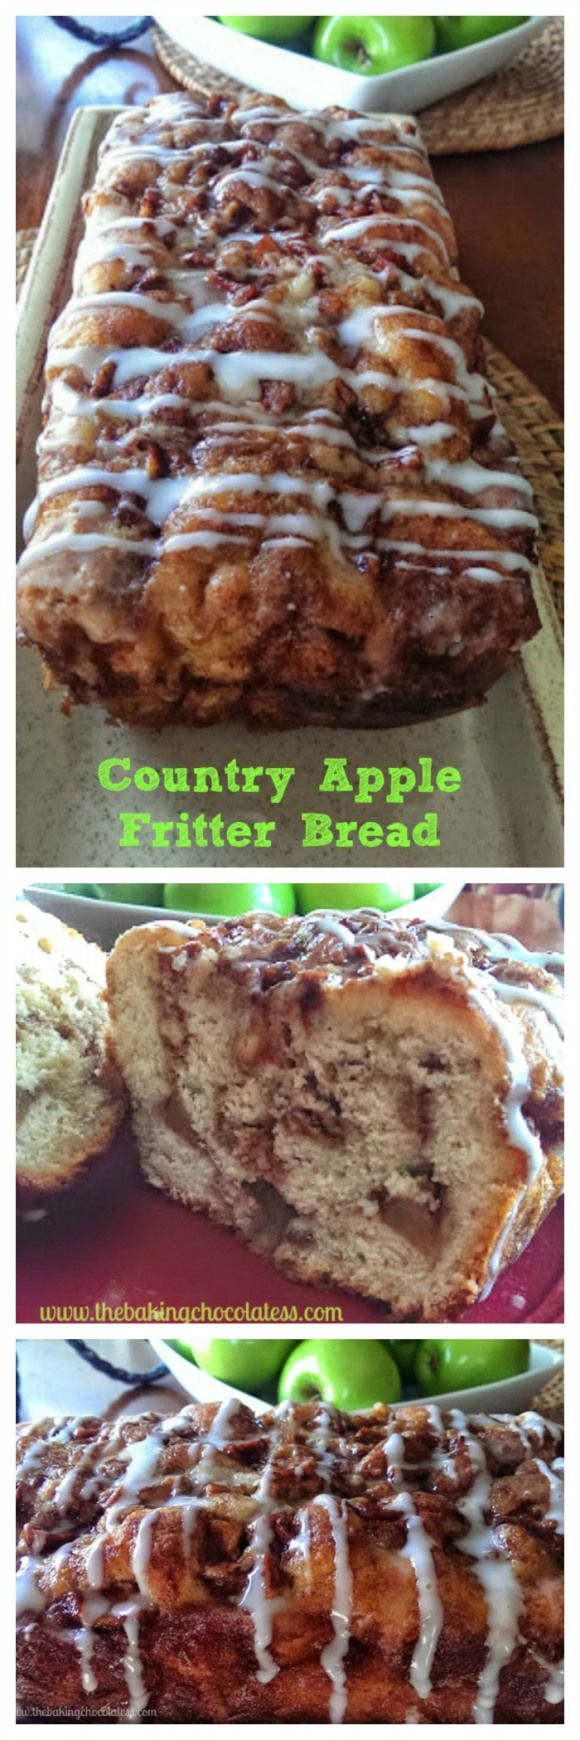 Apple Fritter Bread Yummy! Skipped topping, accidentally forgot vanilla, still tasty. Baked for 70 minutes (turns out oven is 25 degrees low).